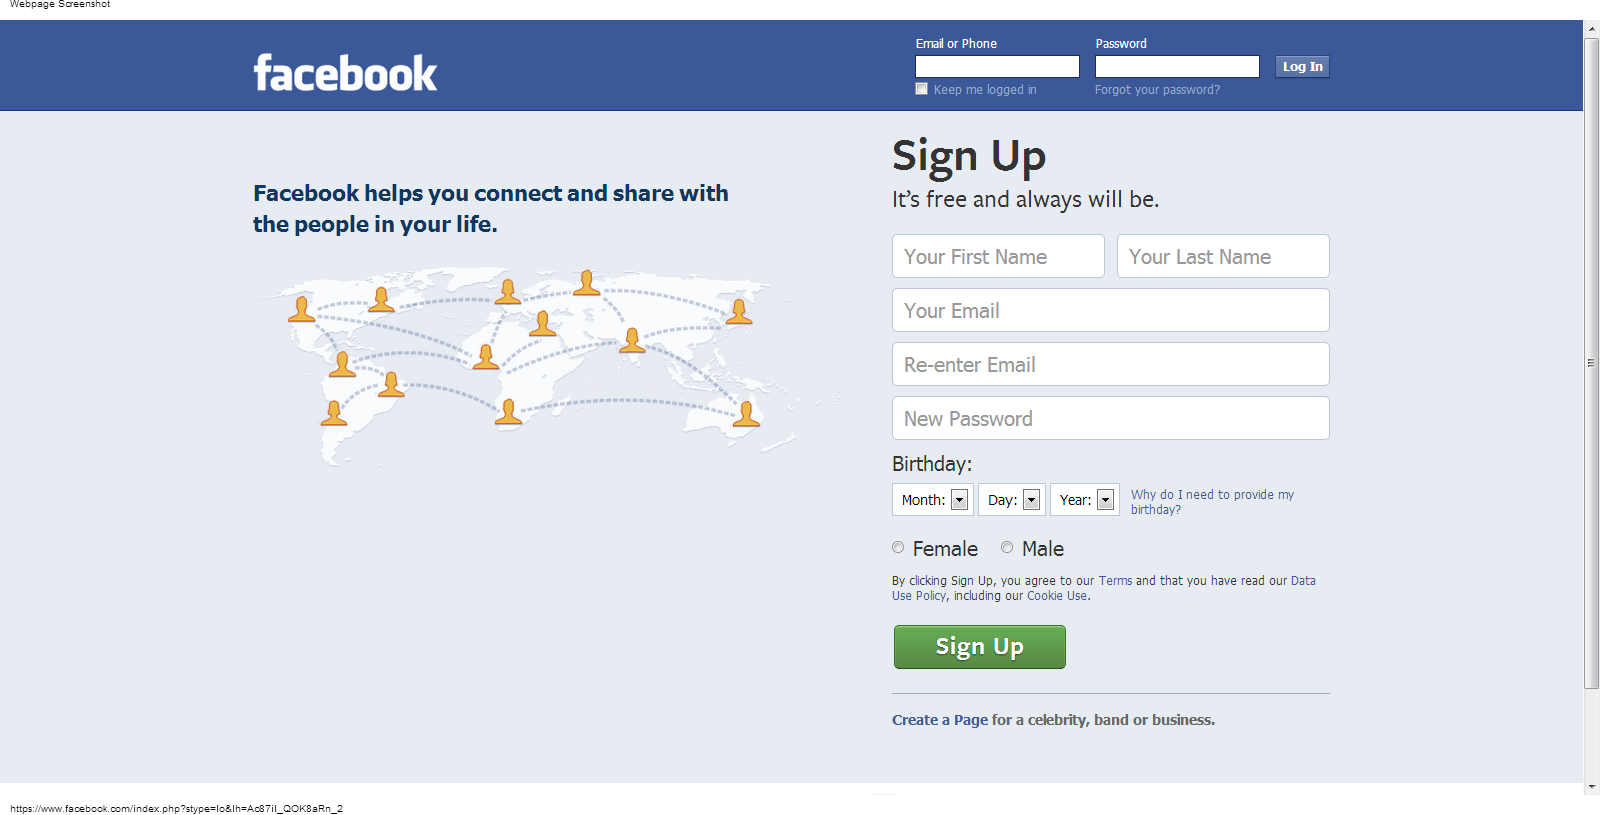 Welcome to Facebook - Log In, Sign Up or Learn More-212801.png